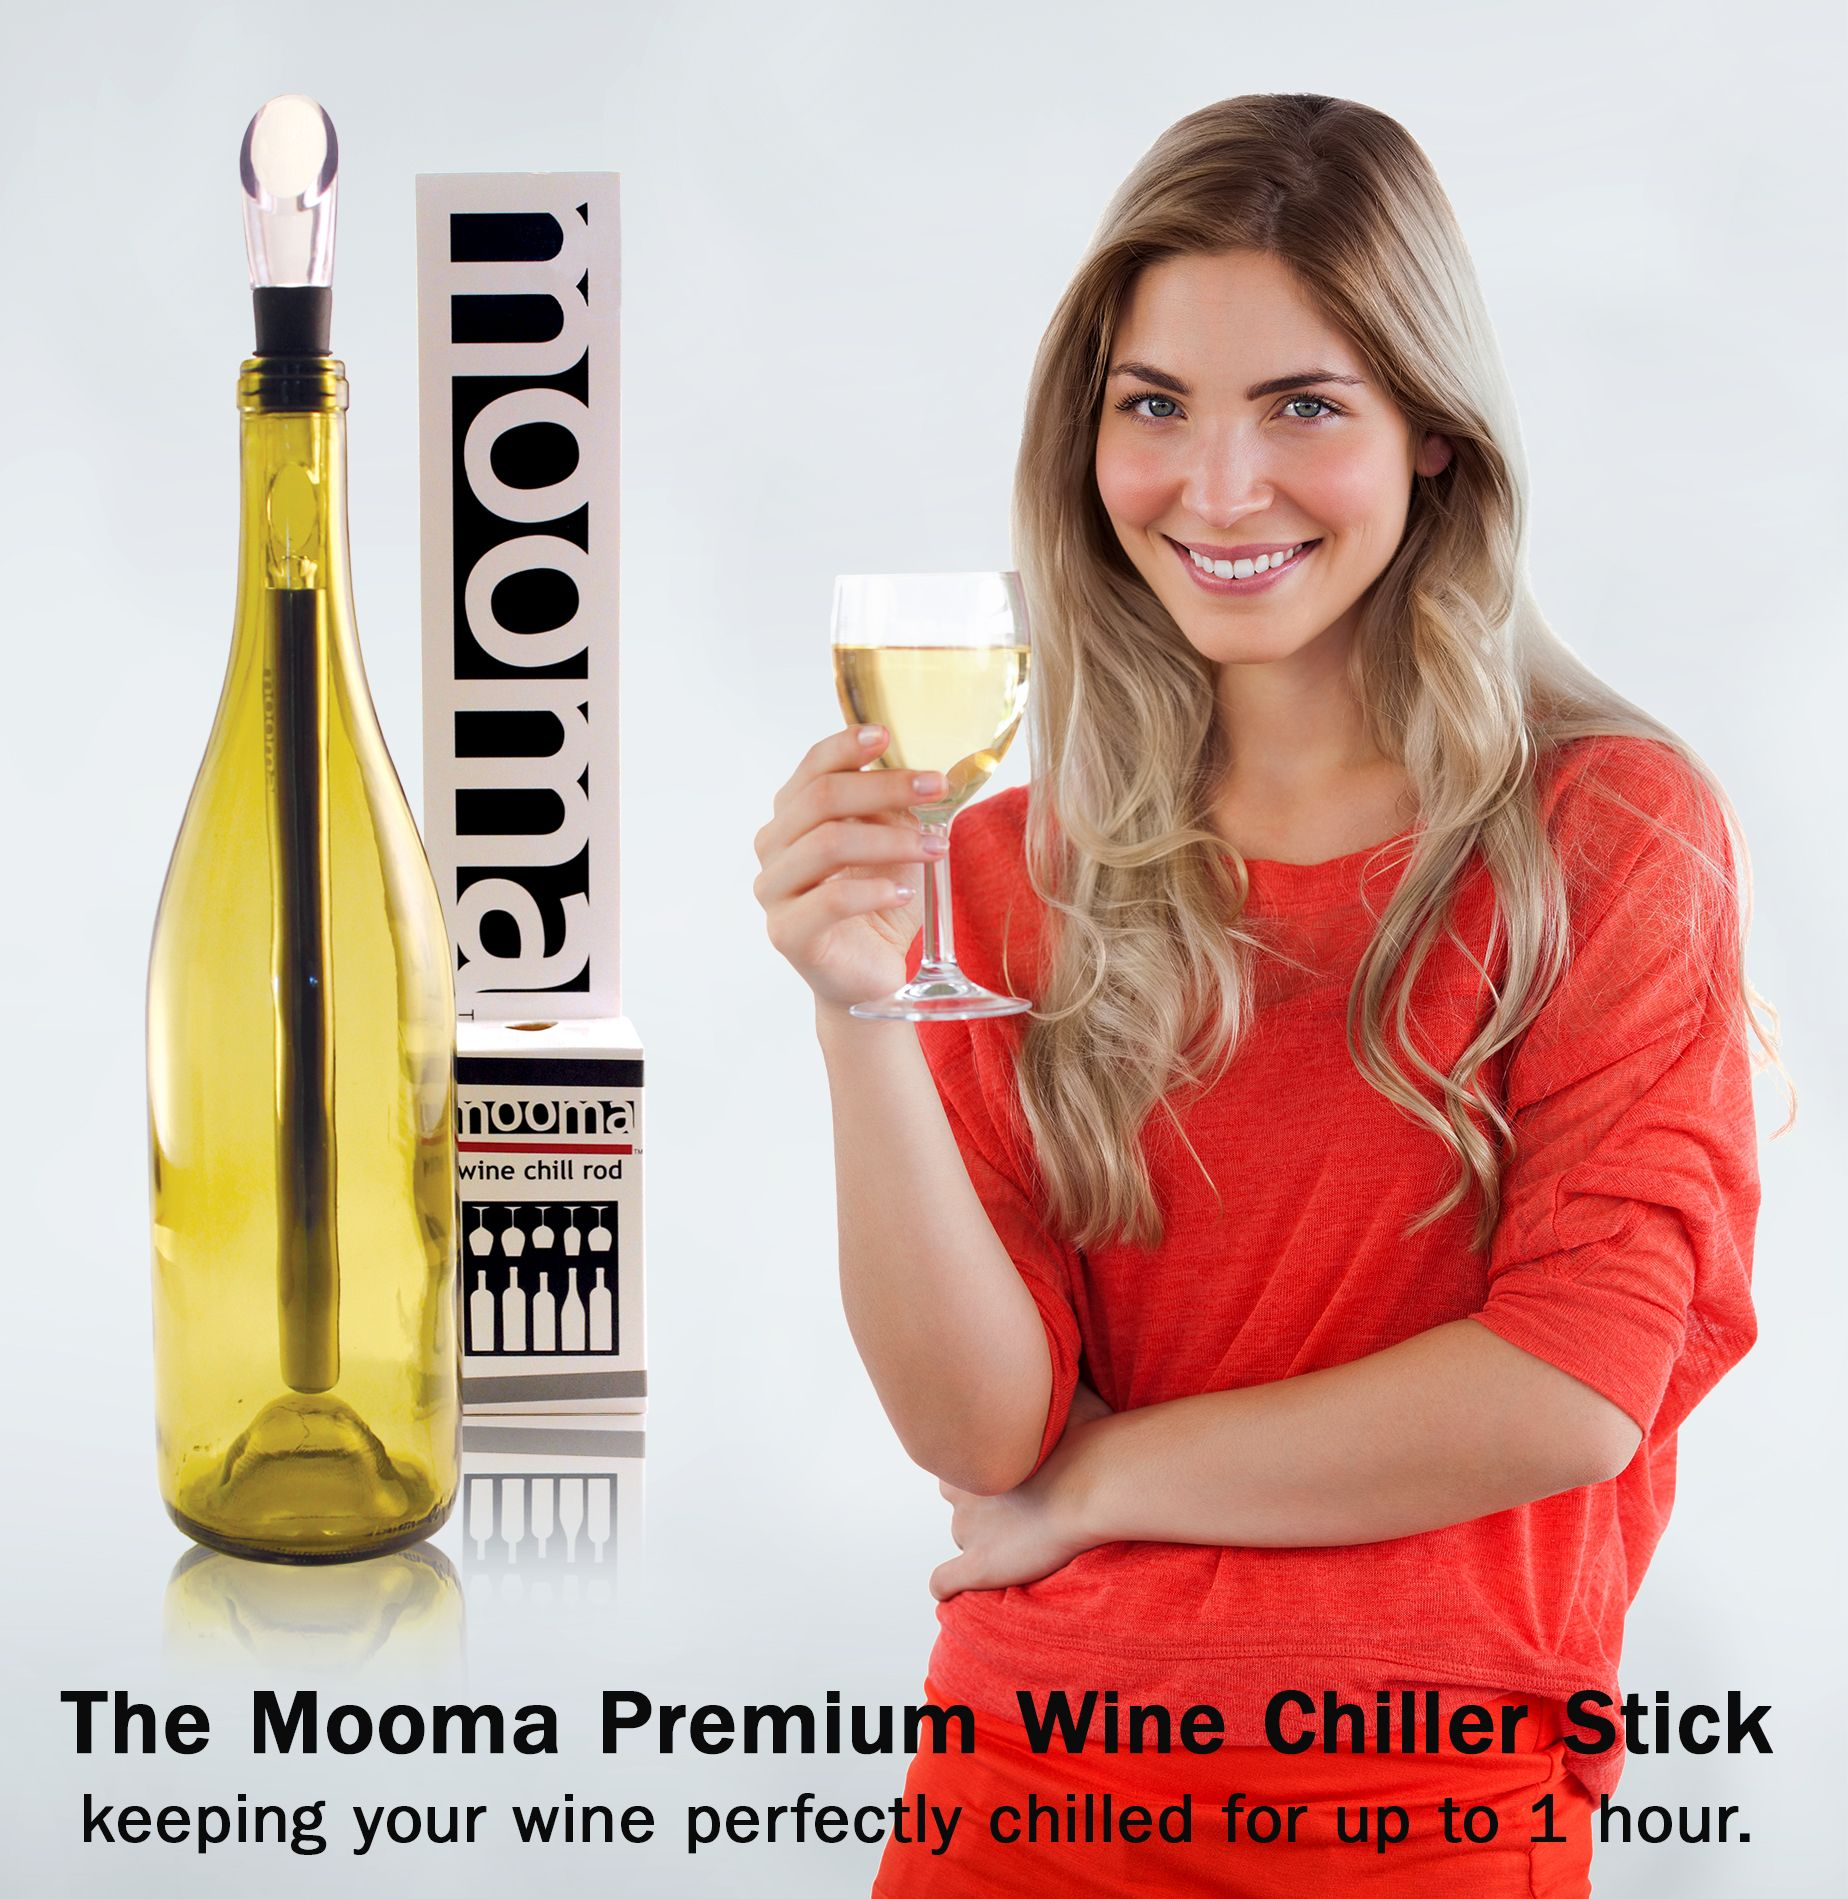 Wow Love This Wine Cooler Stick The Stainless Steel Chill Rod Gets Soooo Cold Keeps My Wine Perfectly C Wine Chiller Stick Chilling White Wine Wine Chiller